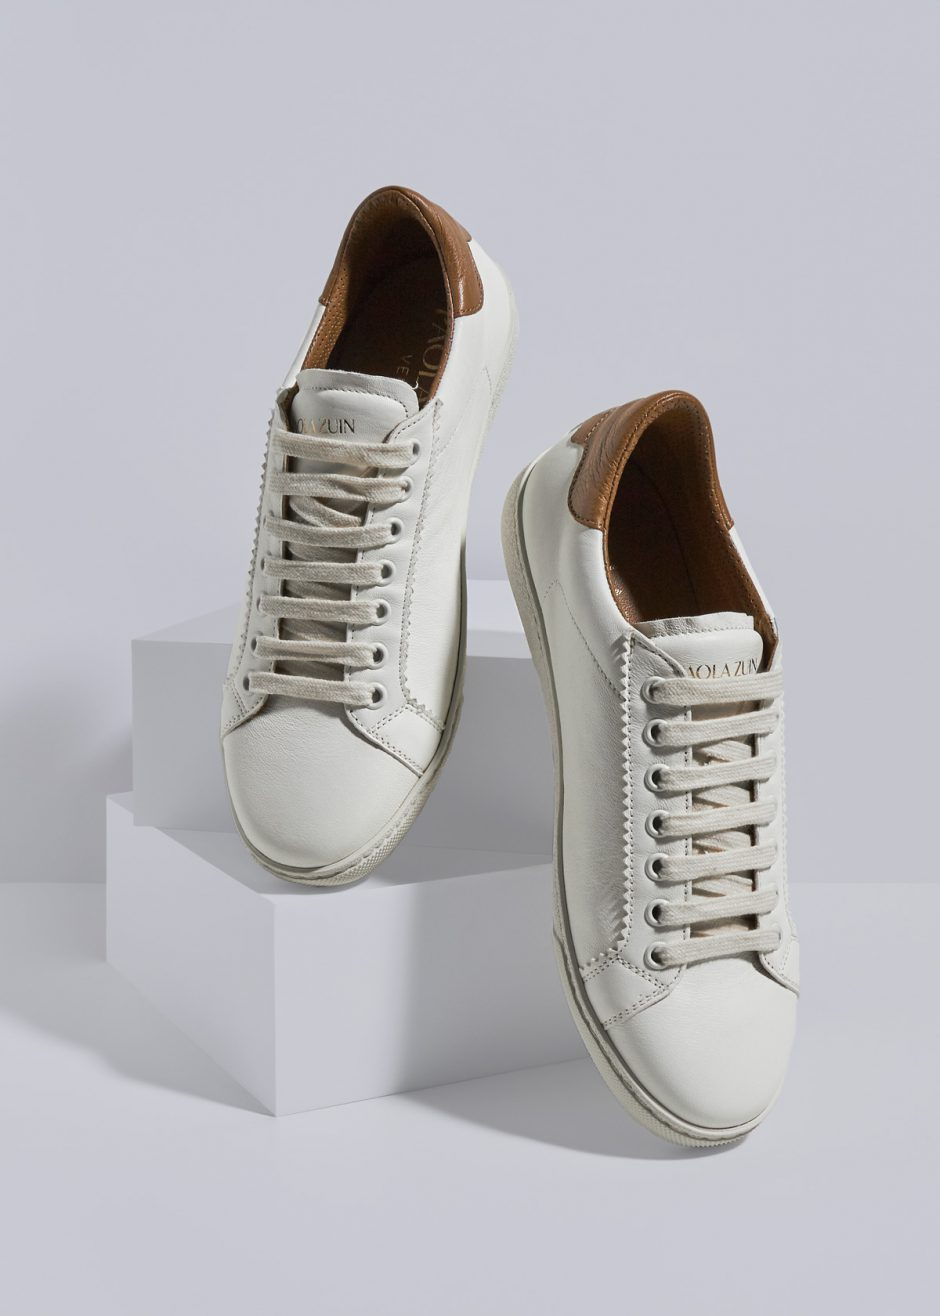 Jackie – Sneakers in pelle di capretto milk